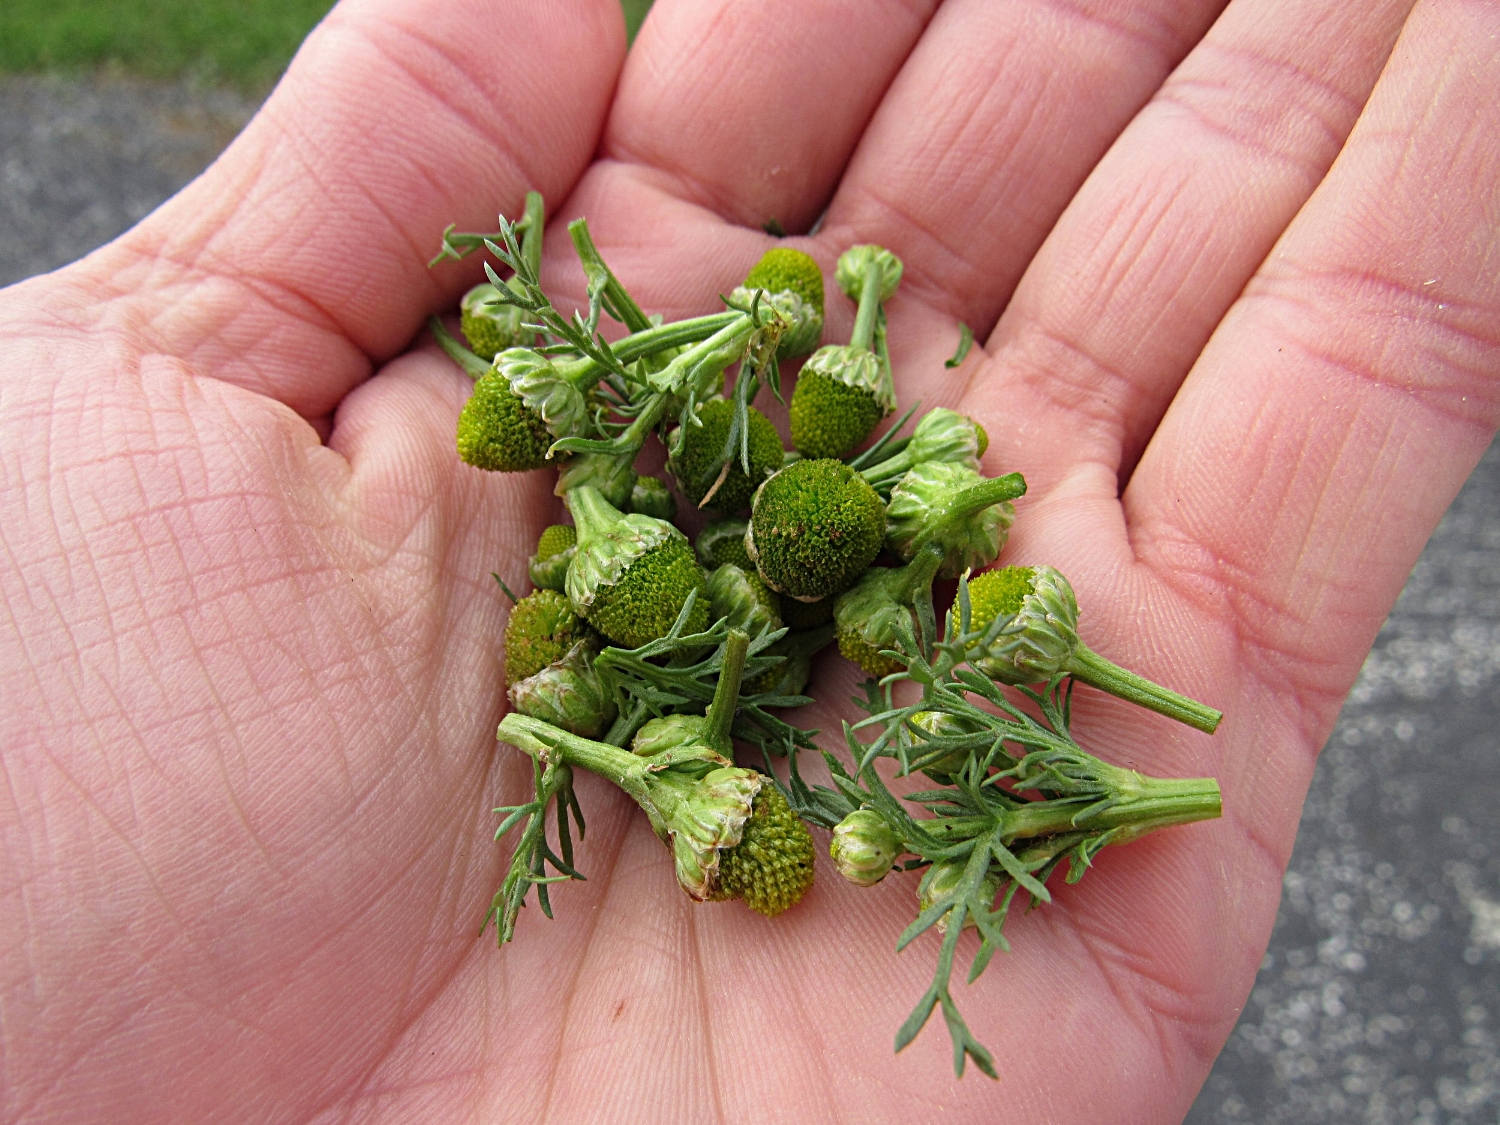 Some pineapple weed buds. These were harvested just a few days ago (in November), so they're a little past their prime.